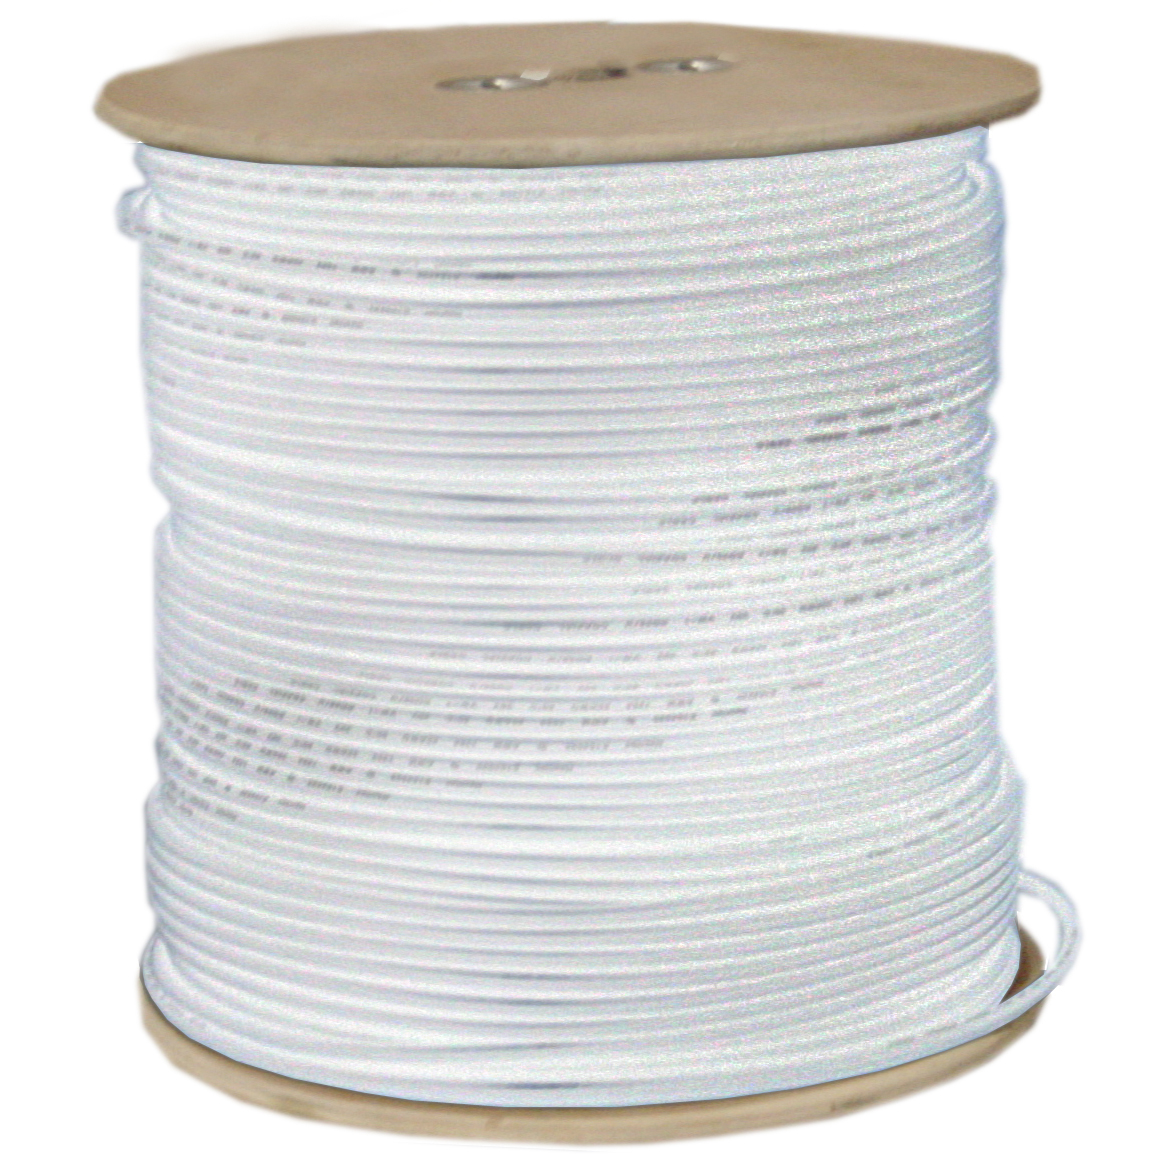 10x4 011th wh 500ft dual white rg6 u coaxial cable 18awg copper center conductor rg6 wiring diagram at alyssarenee.co